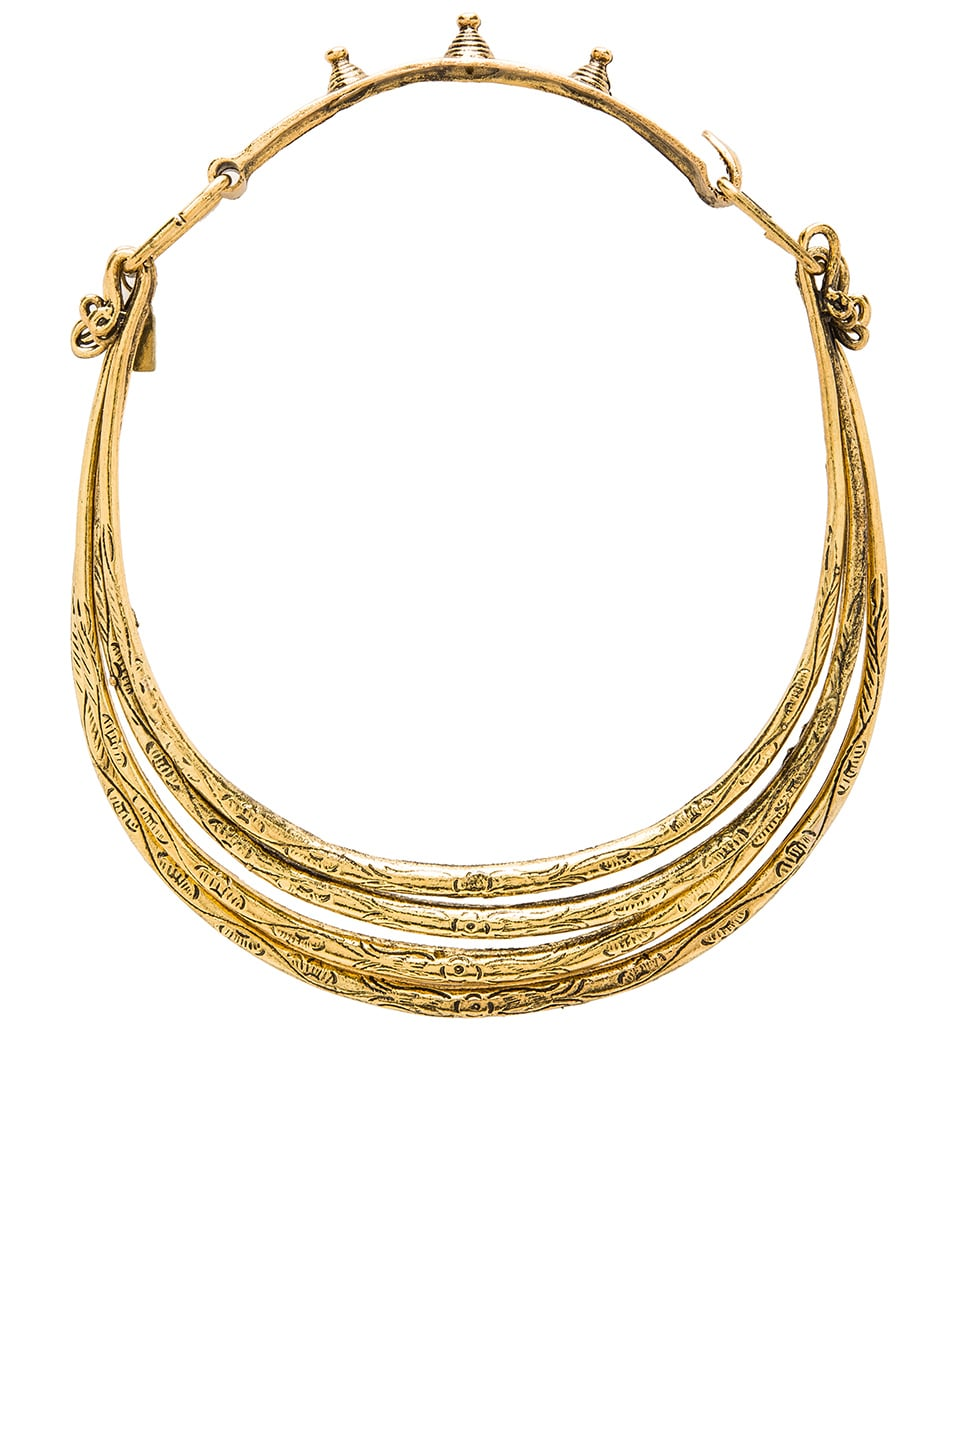 Natalie B Jewelry Soul Seeker Necklace in Metallic Gold